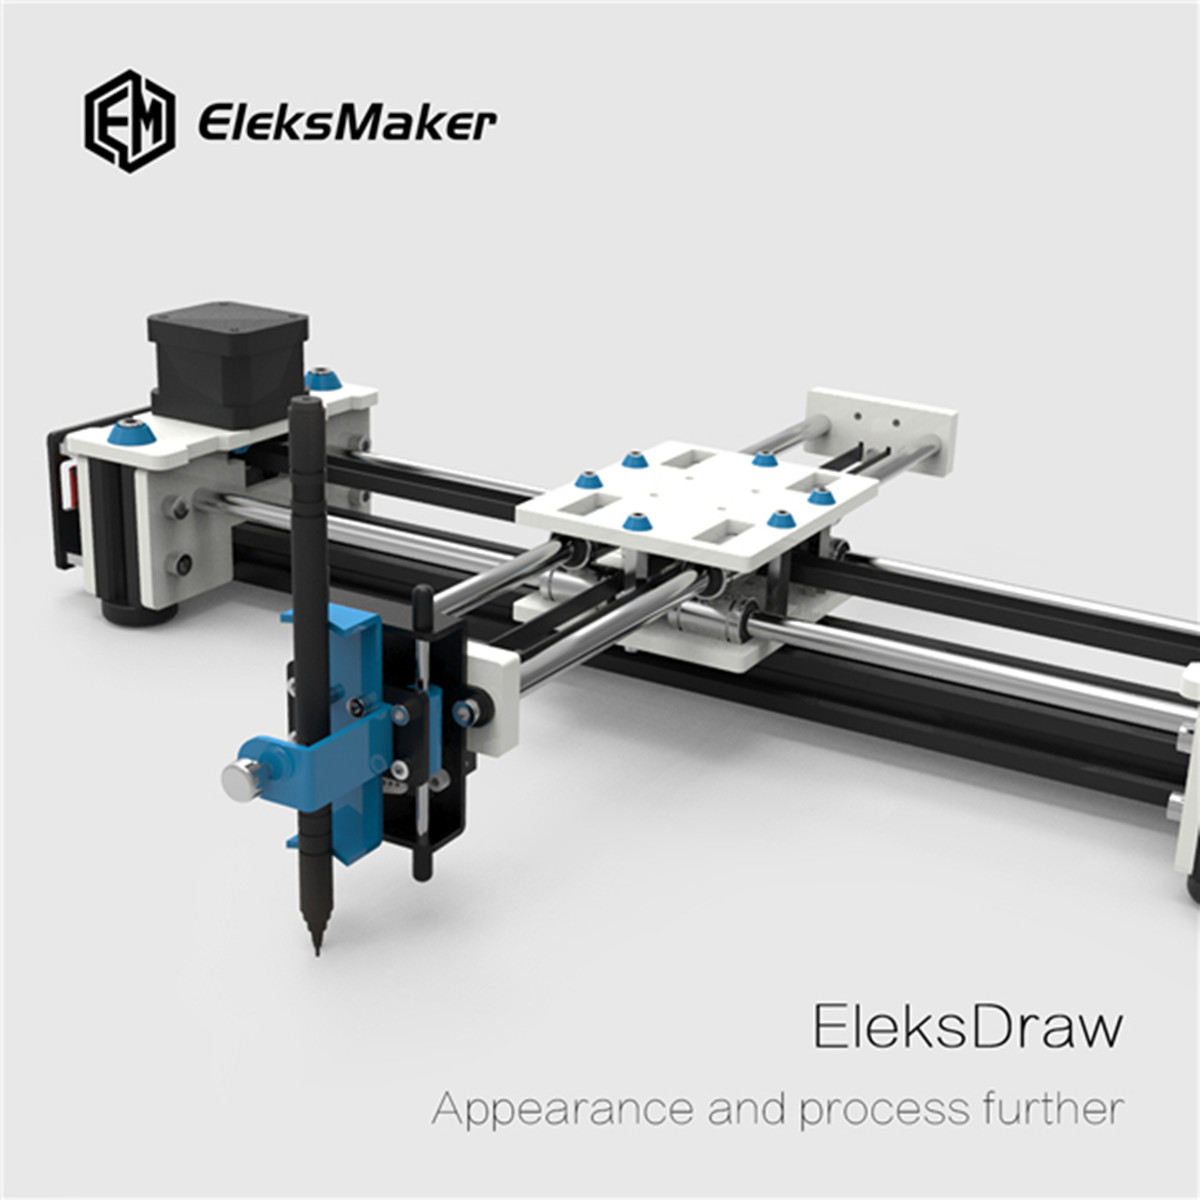 EleksMaker EleksDraw Mini XY 2 Axis CNC Pen Plotter DIY Laser Drawing Machine цена 2017